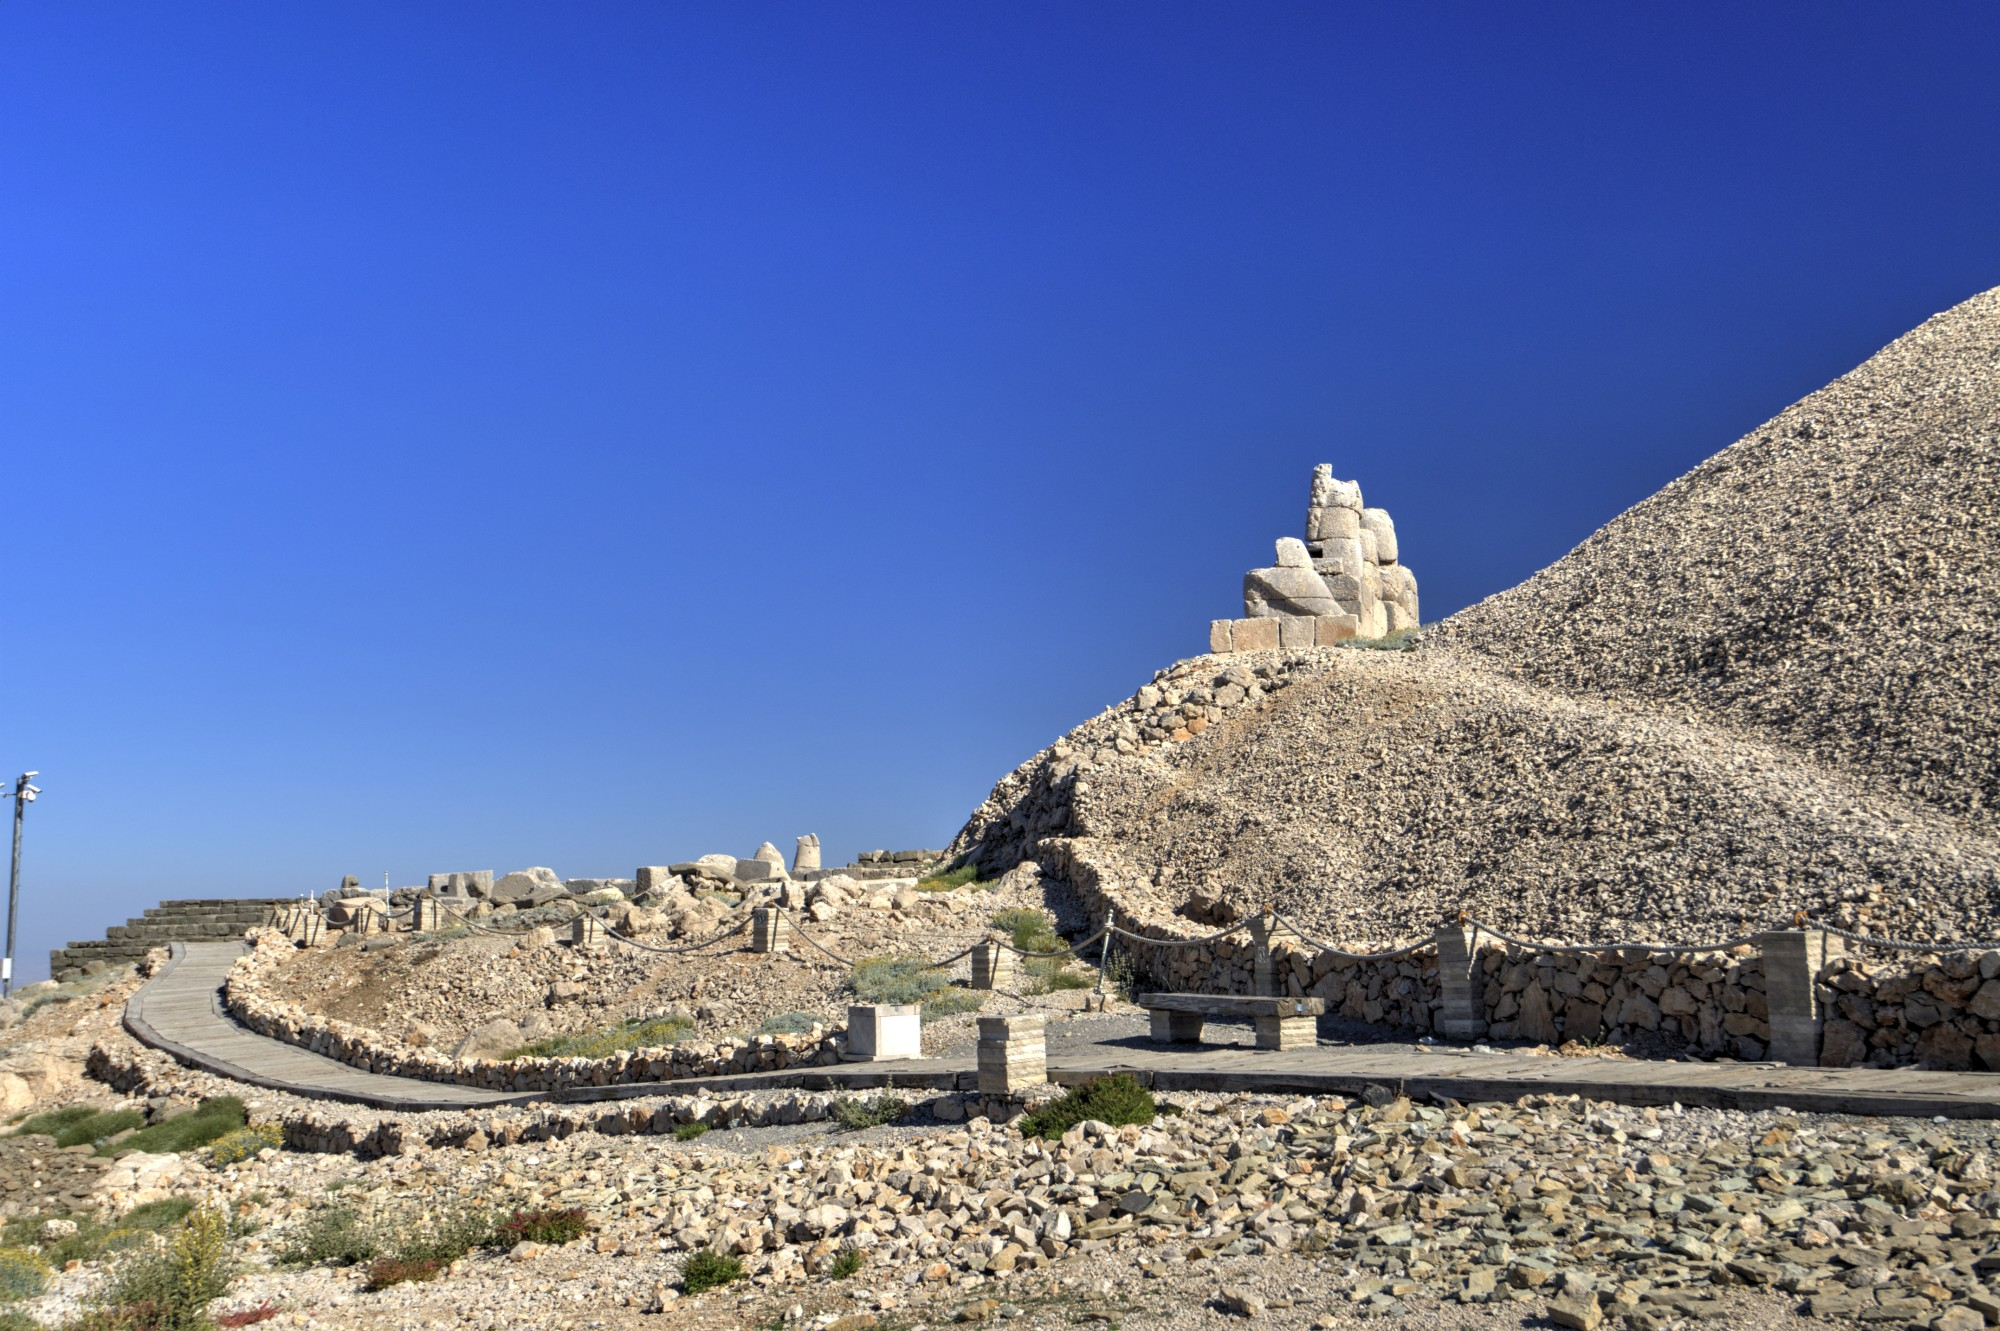 East Terrace on Mount Nemrut